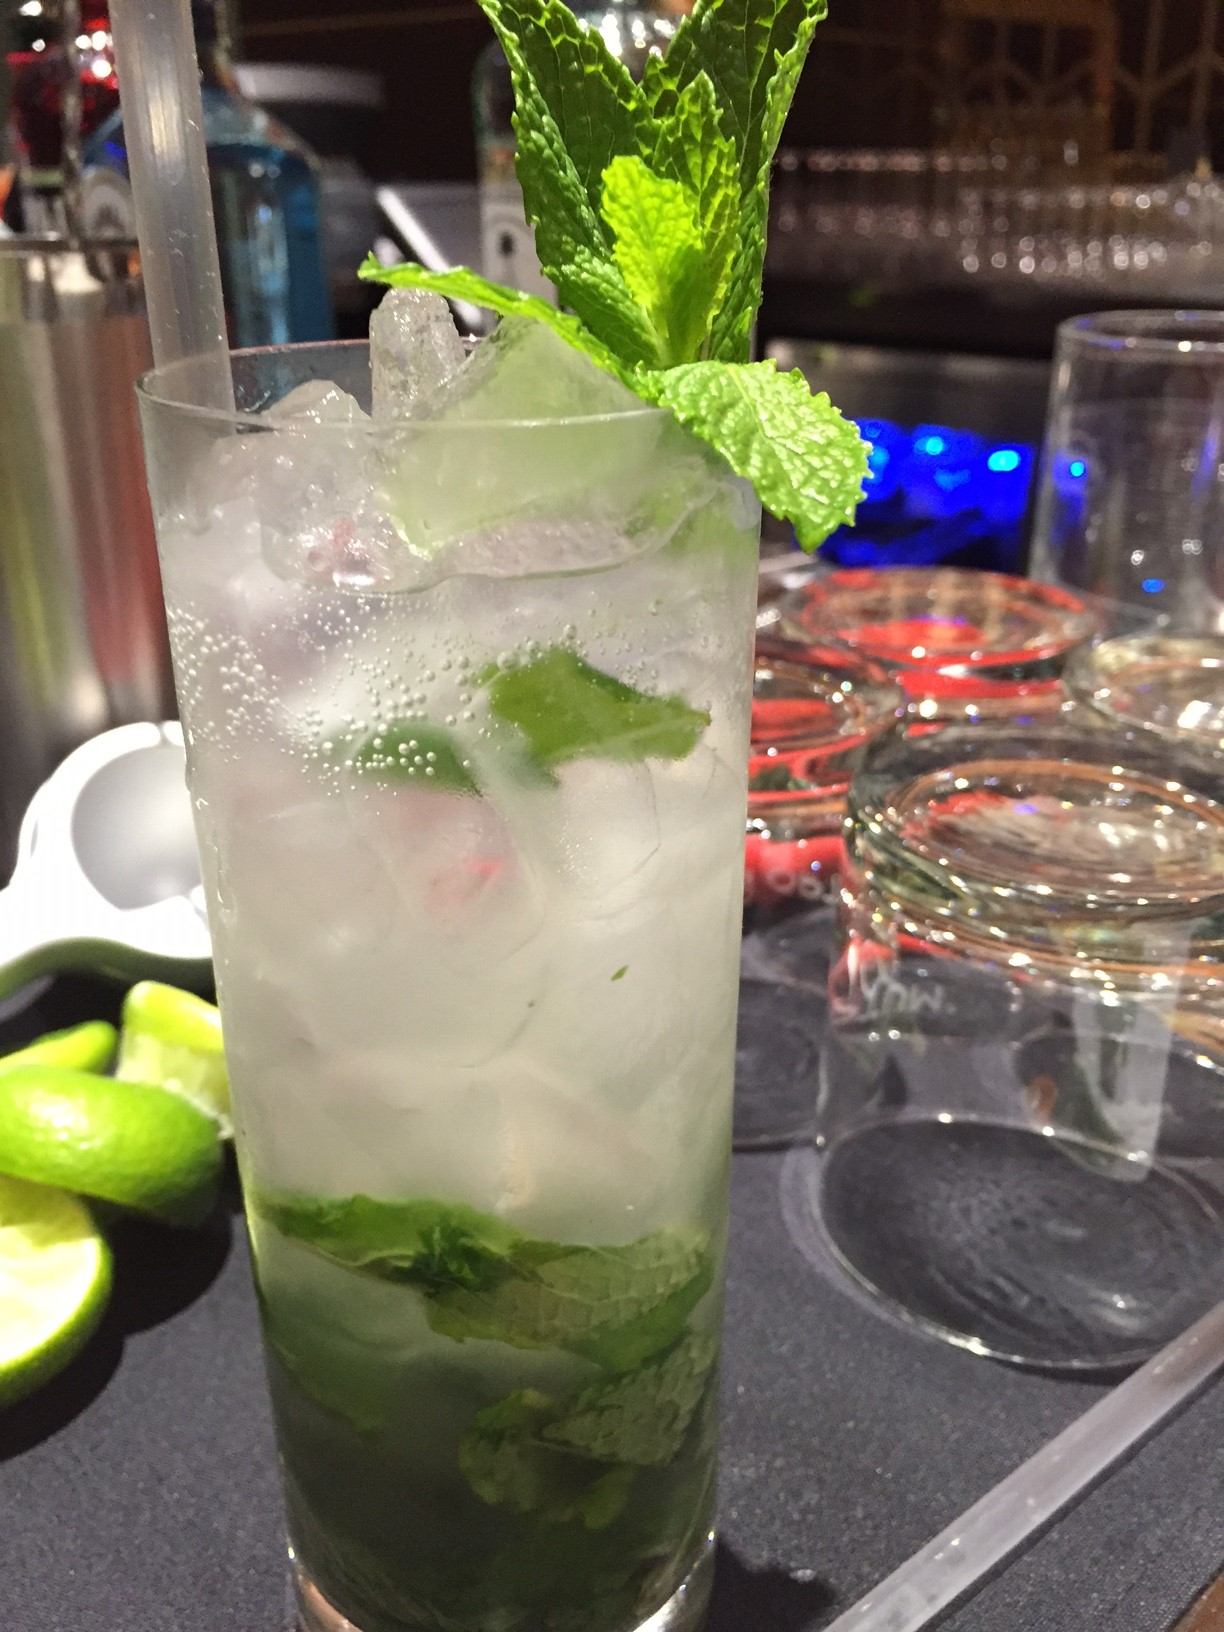 Indulge in a fresh mojito at T-Mobile Arena. Photo by Kristine McKenzie.